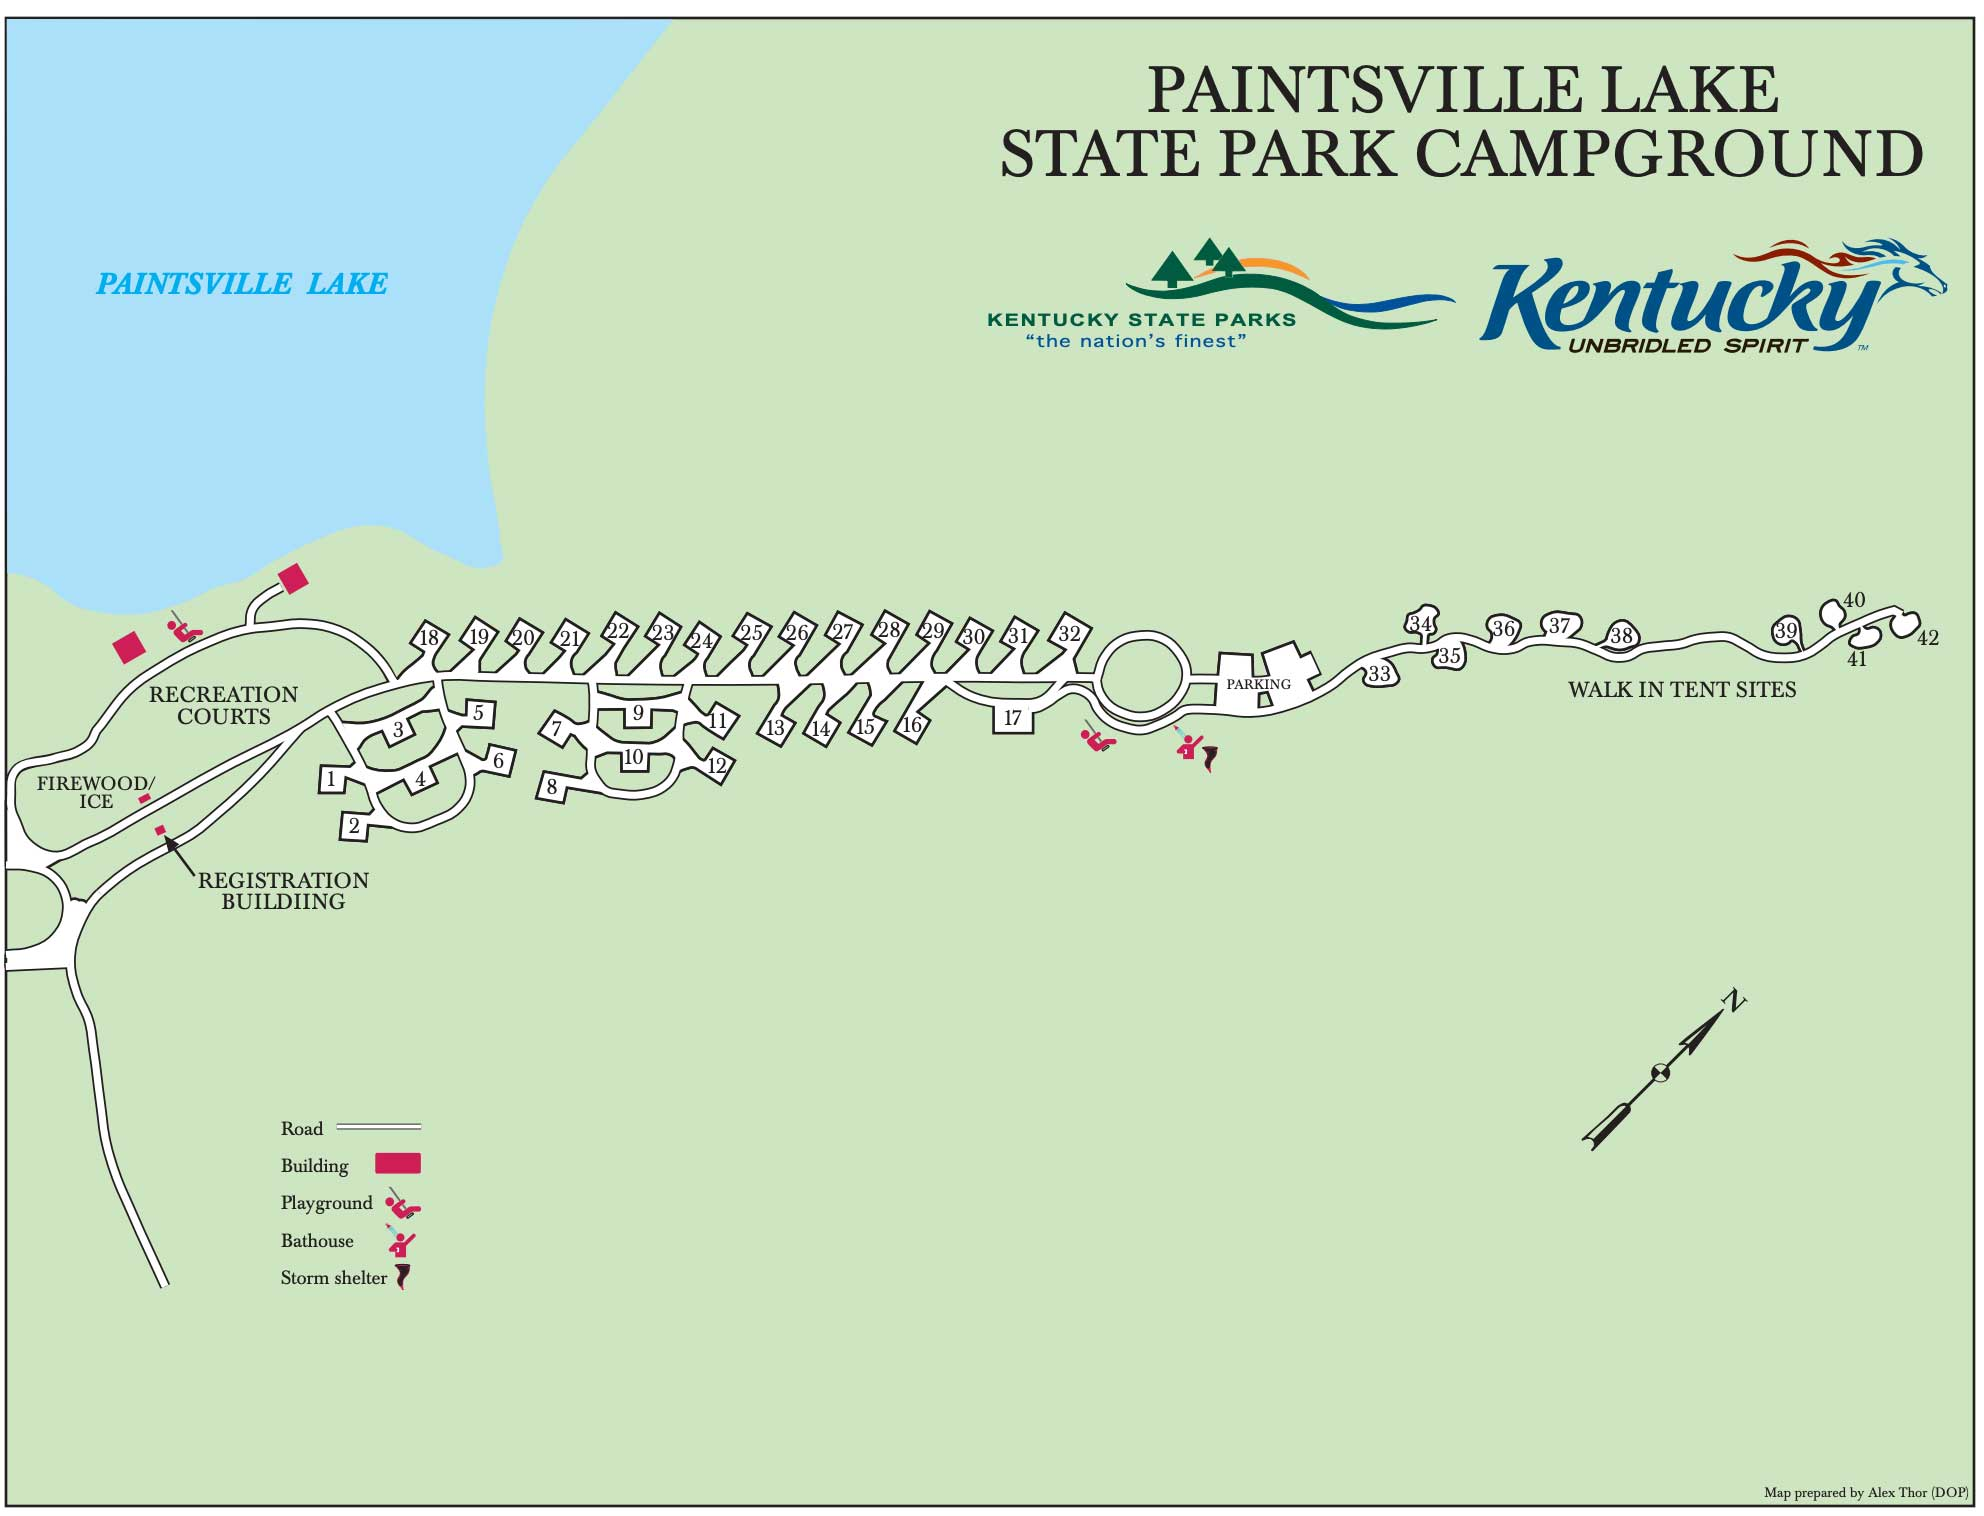 Paintsville Lake - CMH23 | Country Music Highway 23 on boonesborough map, kentucky state park reservations, daniel boone national forest camping map, hoffmaster state park mi map, pennyrile ky map, state of california beaches map, kentucky bourbon distillers map, grayson lake bruin map, red river gorge camping map, kentucky bourbon trail map, tom sawyer park map, carter caves state park map, world's end state park map, michigan state park campgrounds map, green river ky fishing map, gulf state park camping map, wilderness state park campground map, land between the lakes camping map, long key state park campground map, mirror lake wi map,